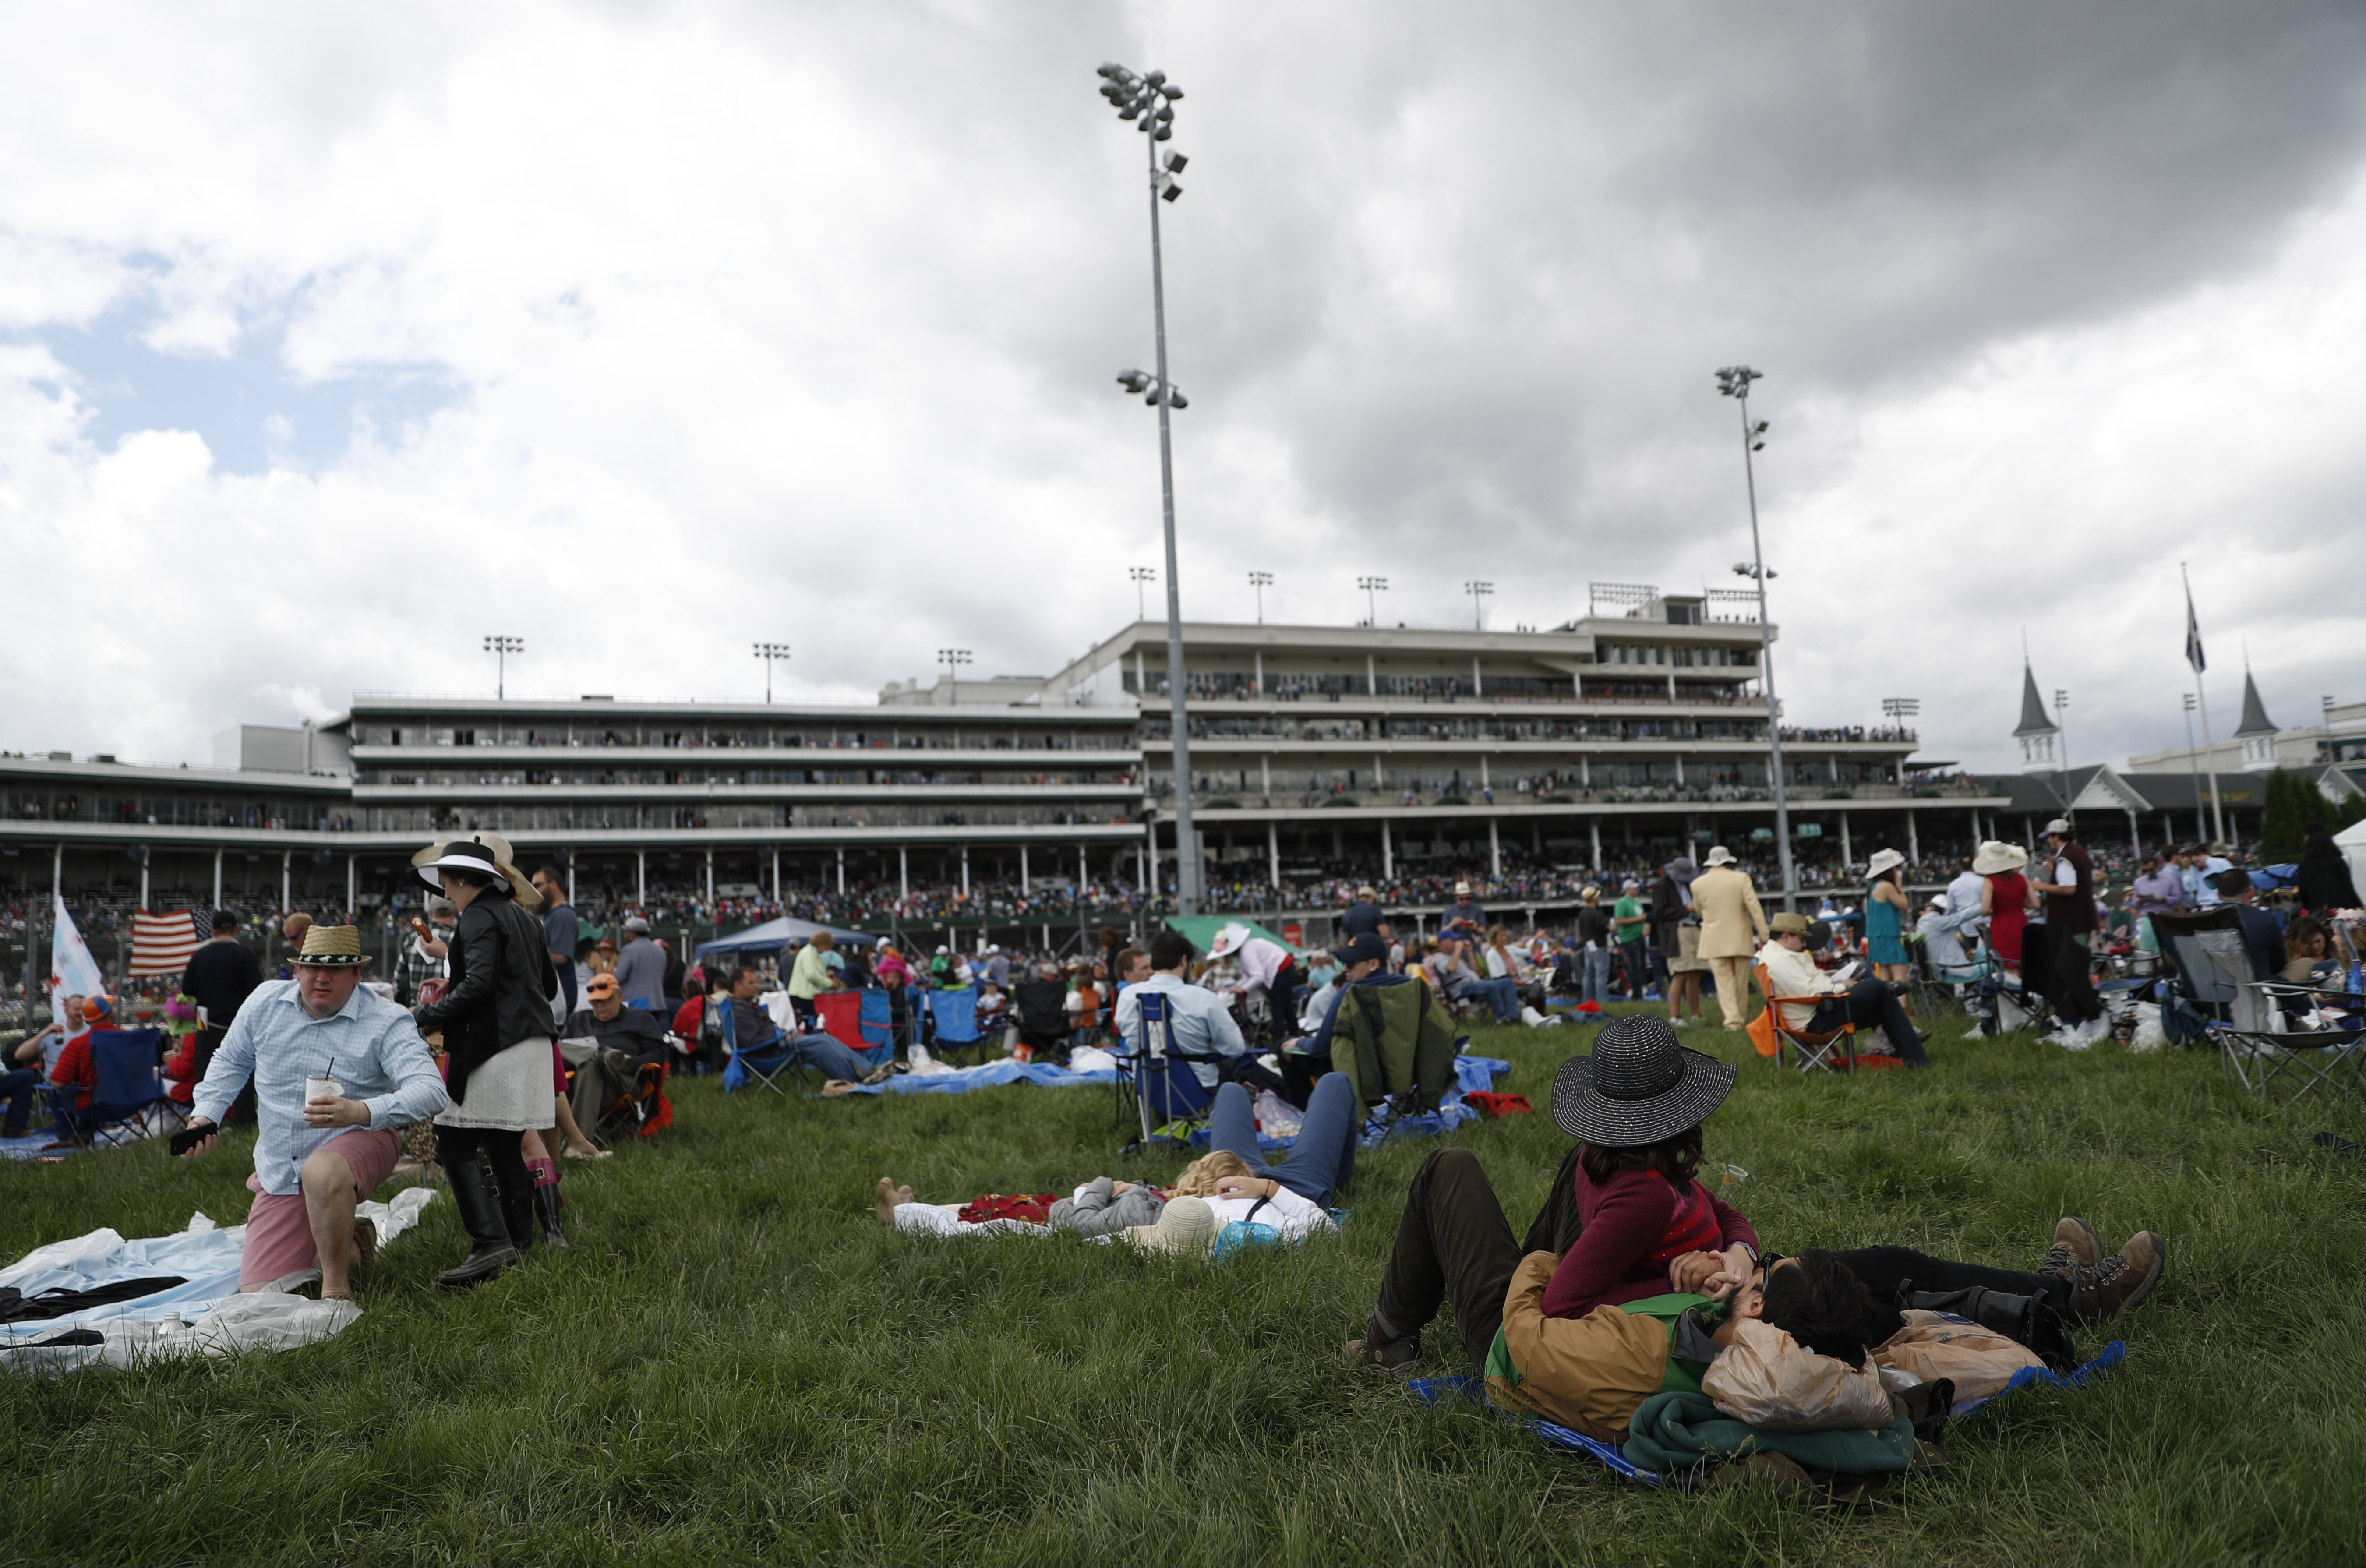 Fans wait for the start of the 143rd running of the Kentucky Derby horse race at Churchill Downs Saturday, May 6, 2017, in Louisville, Ky. (AP Photo/John Minchillo)